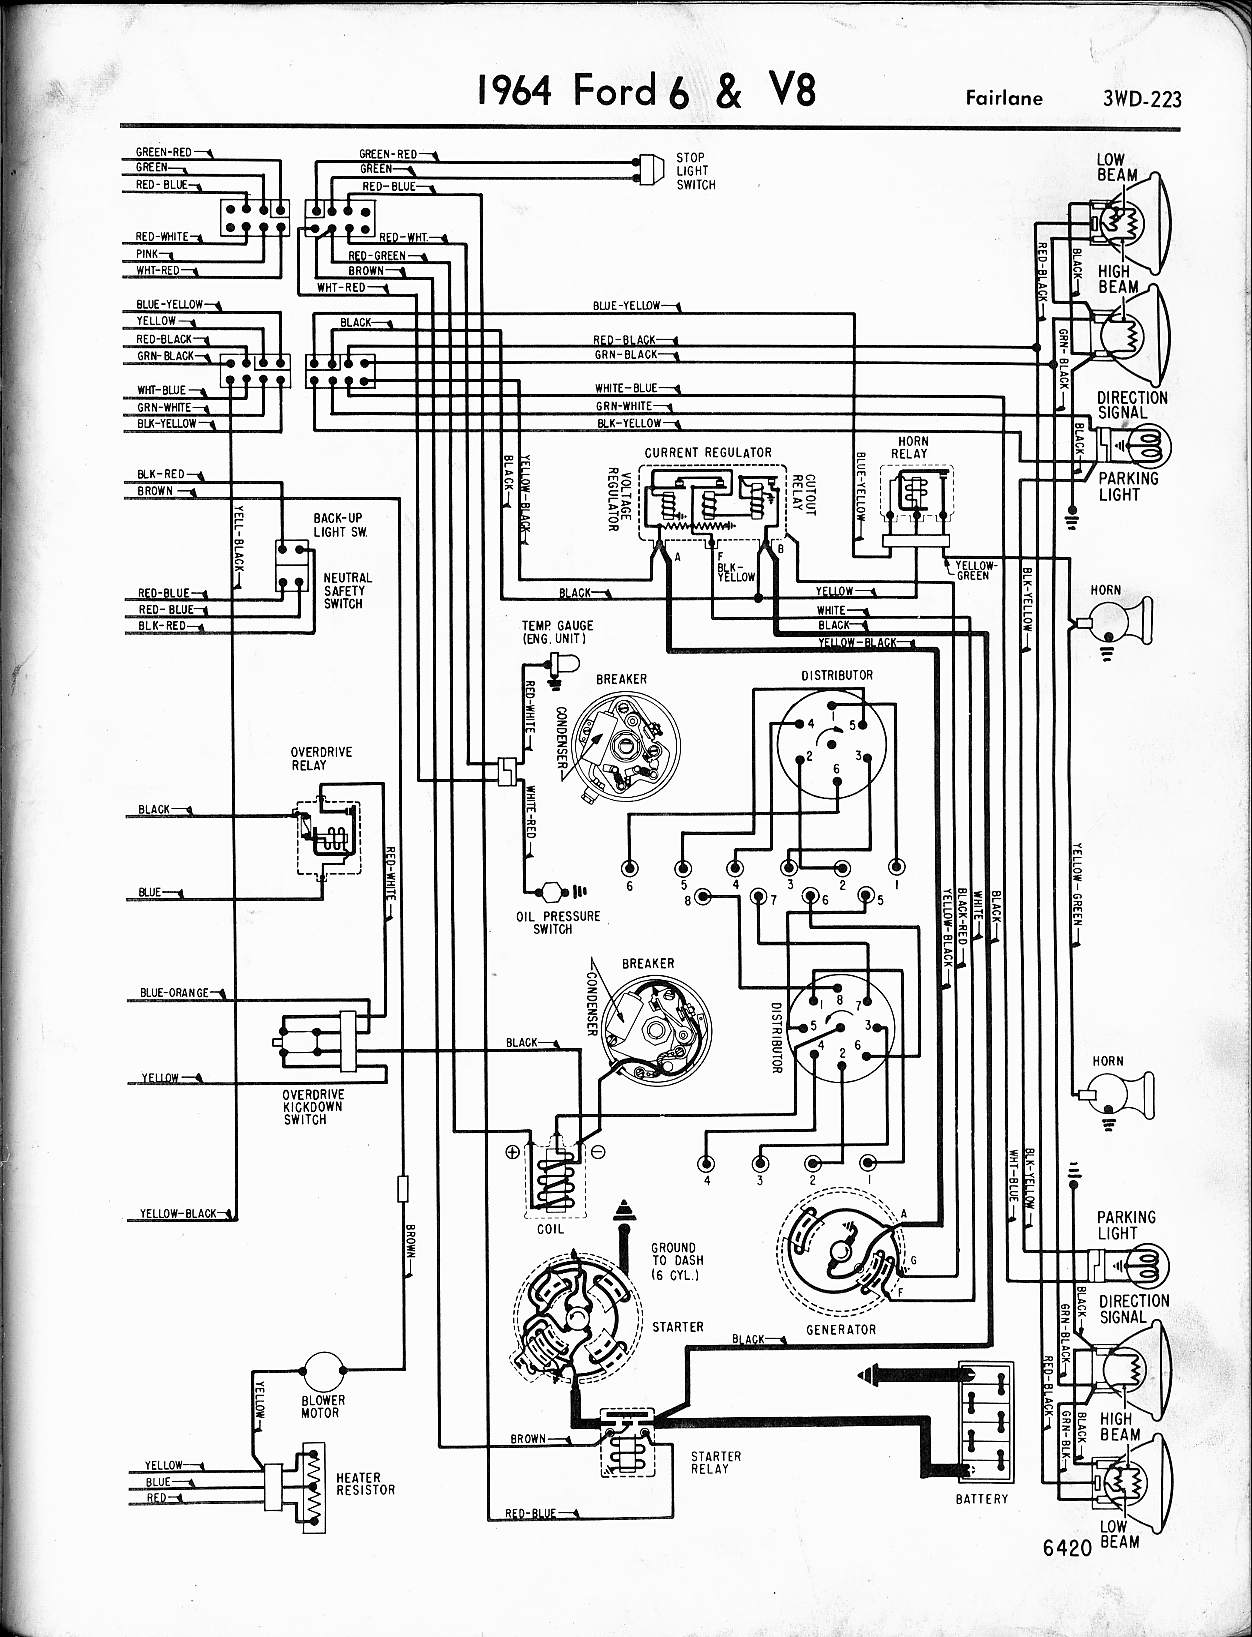 Au Falcon Wiring Diagram on ar diagram, pe diagram, vg diagram, ac diagram, cd diagram, vn diagram, pt diagram, ro diagram, ba diagram,